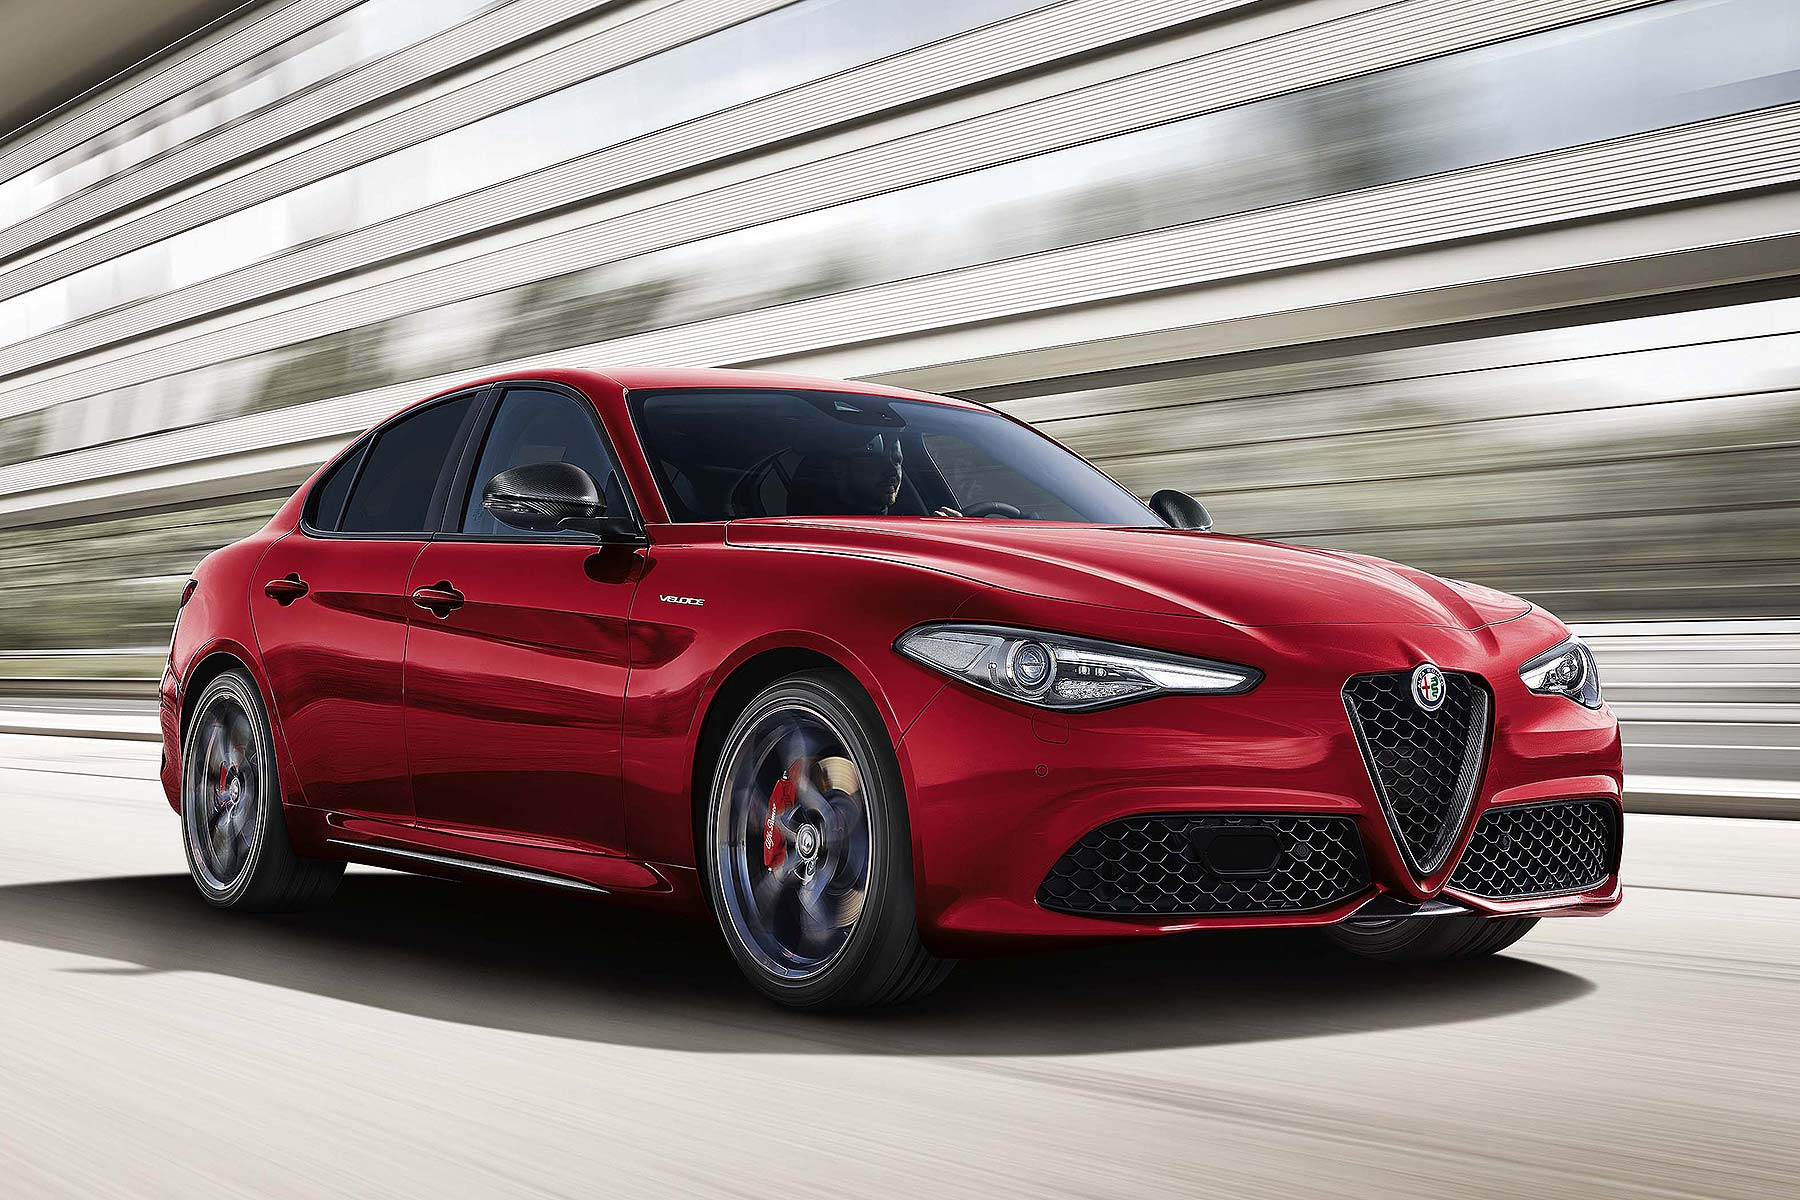 Alfa Romeo Giulia And Stelvio Upgraded With Revised Engines And - Alfa romeo price range